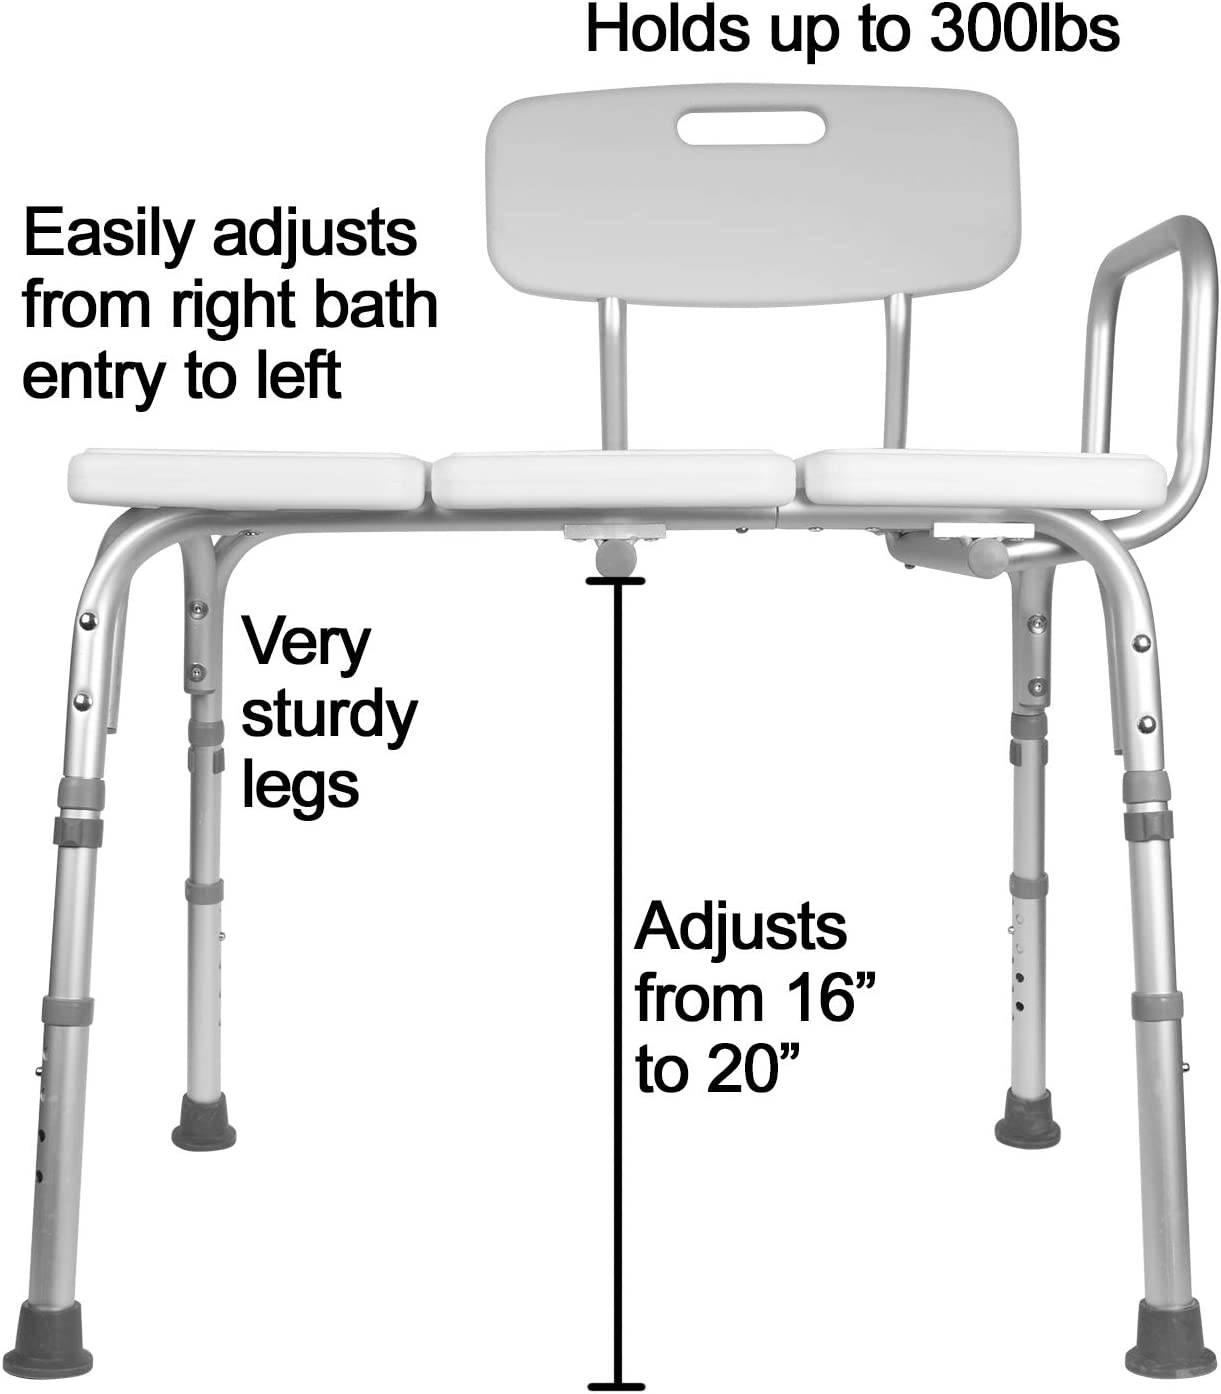 Carex Tub Transfer Bench - Shower Chair Transfer Bench with Height Adjustable Legs - Convertible to Right or Left Hand Entry: Health & Personal Care